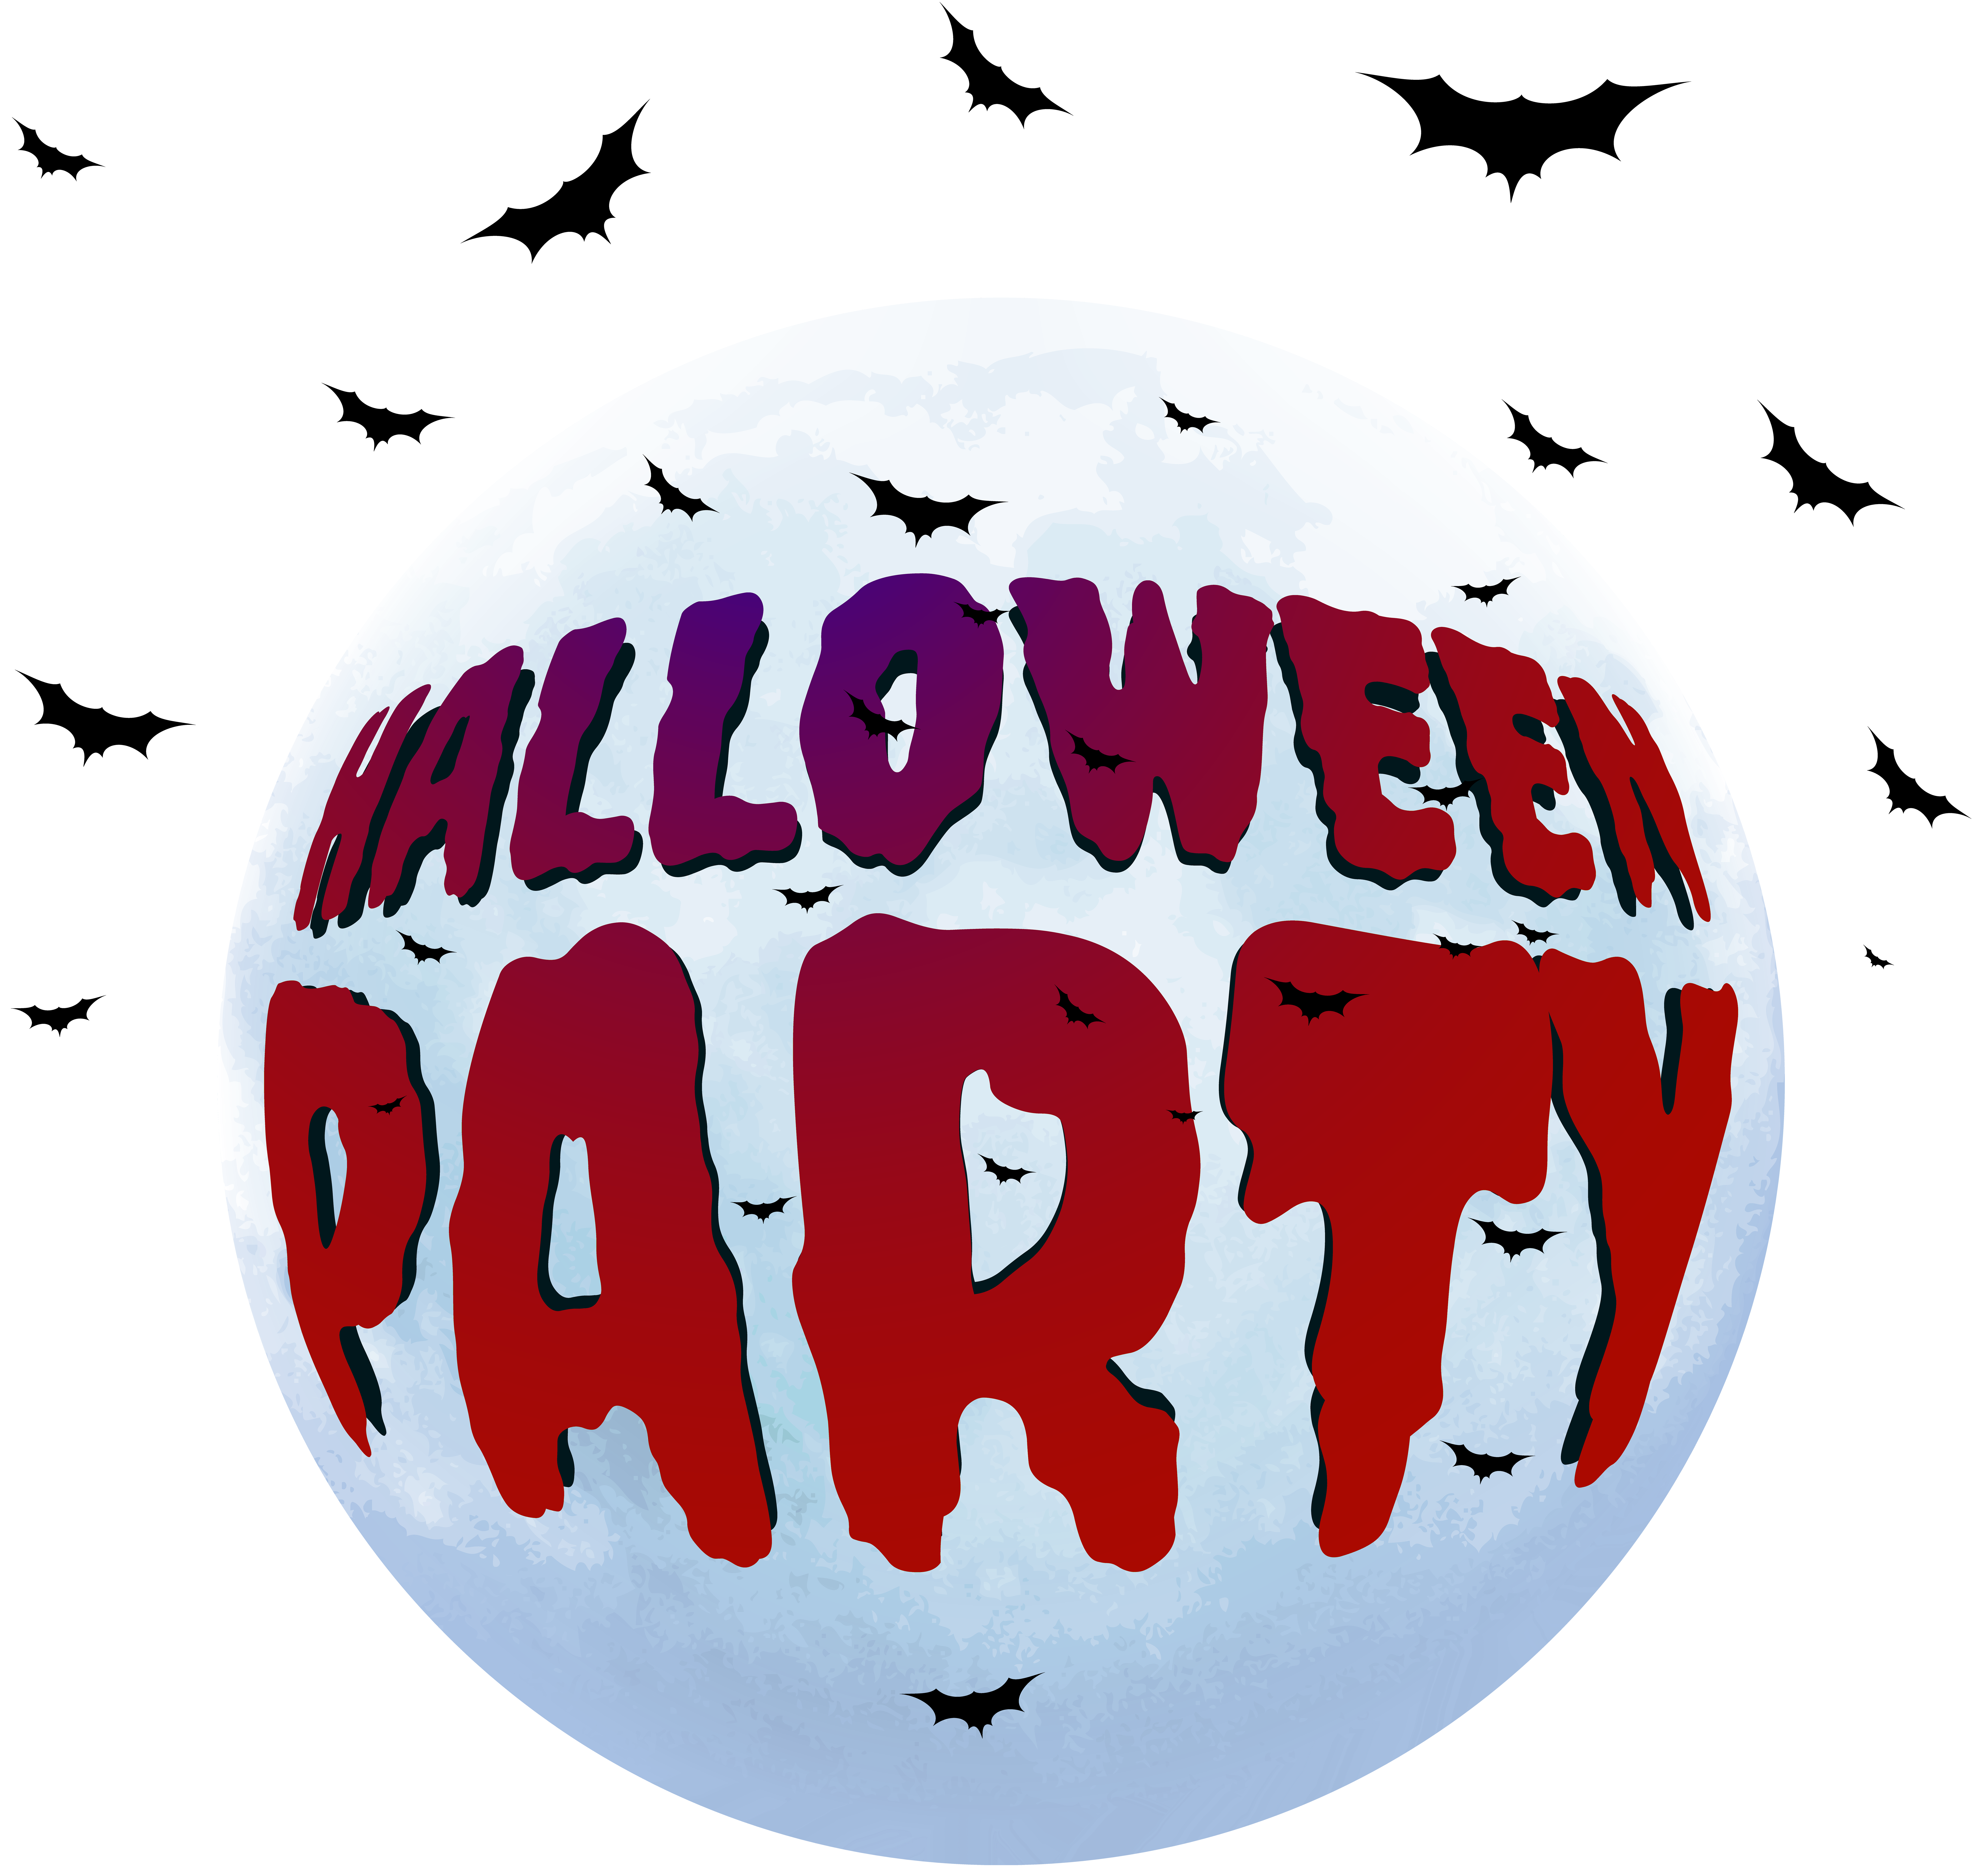 Halloween party banner clipart clip transparent stock Halloween Party PNG Clip Art Image | Gallery Yopriceville - High ... clip transparent stock